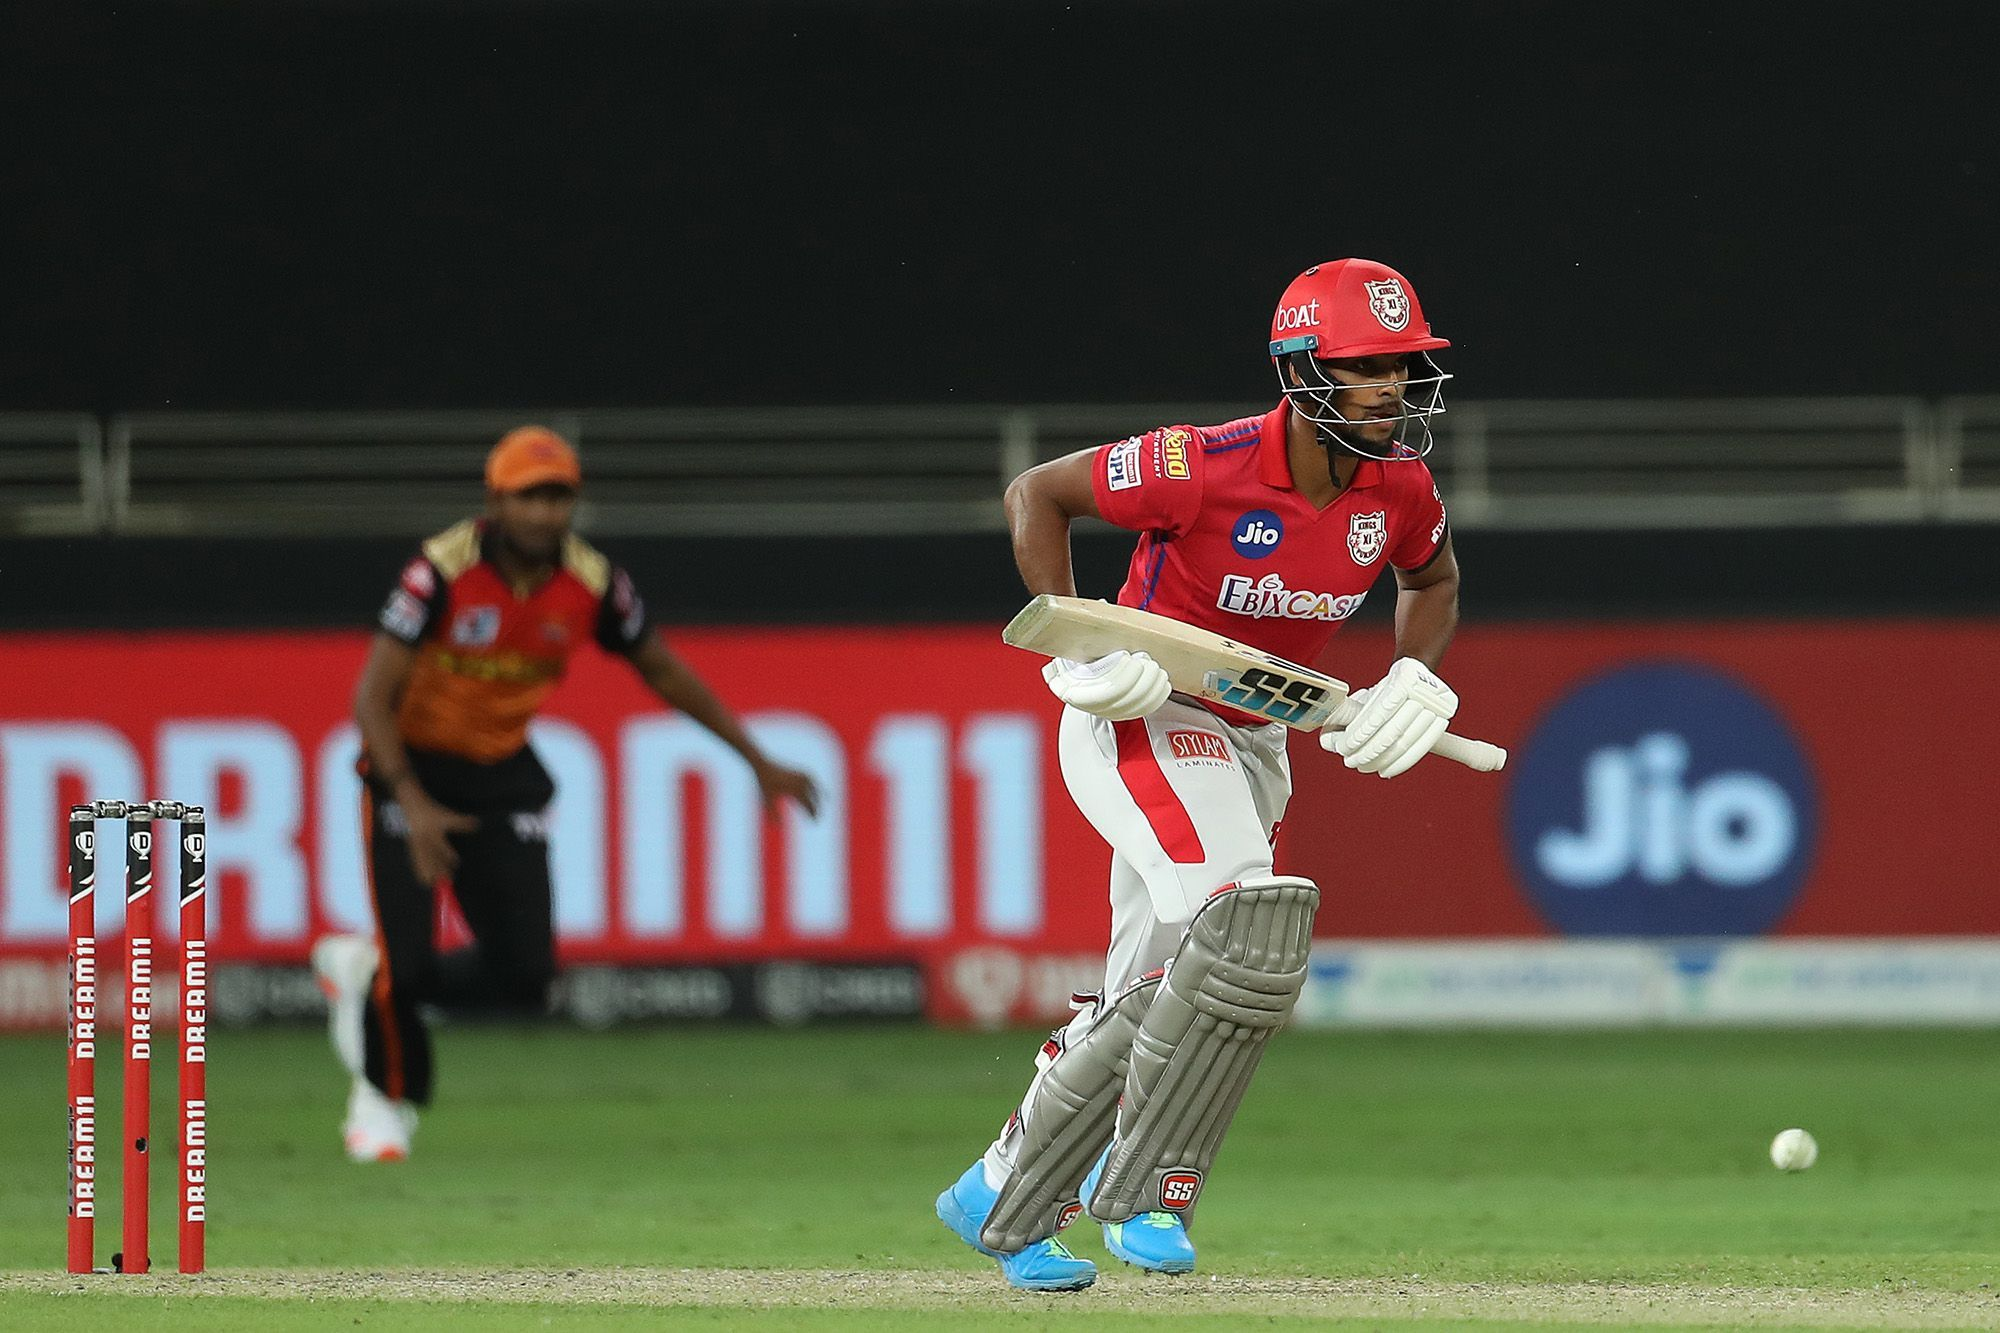 Nicholas Puran top-scored for Punjab with 32 runs.  As a result the team scored 126 for 7 wickets.